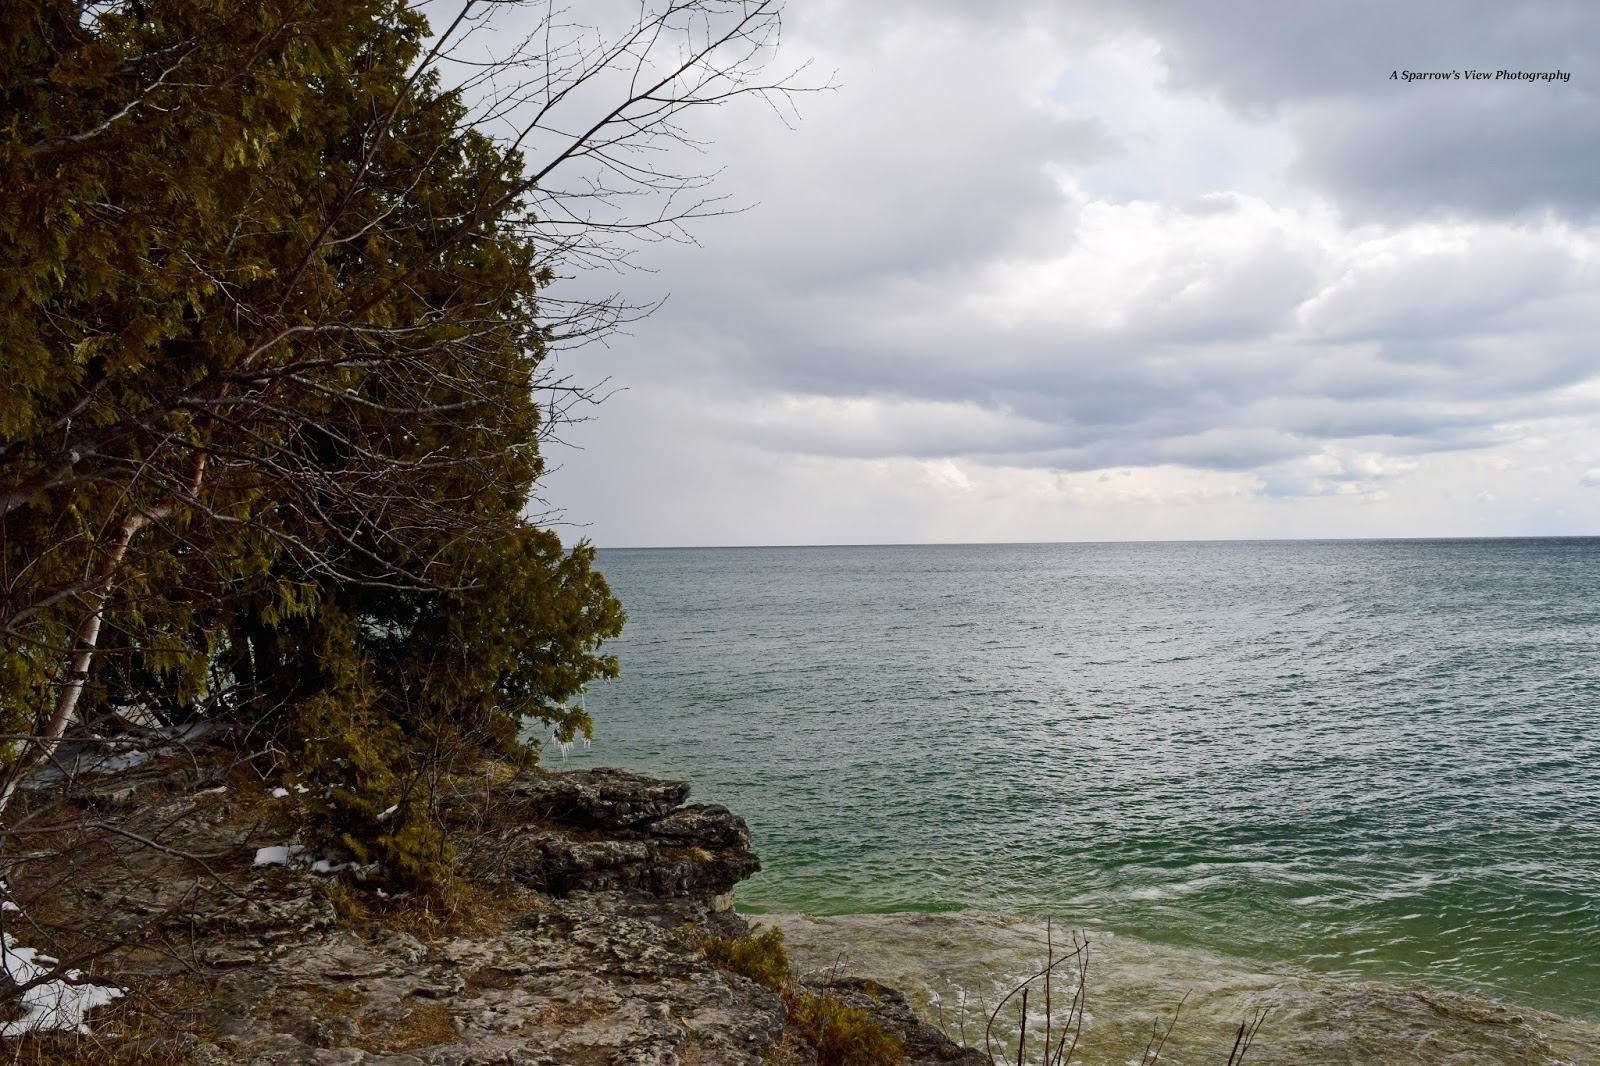 Cave Point Lake Michigan Door County & A Sparrowu0027s View Photography: Cave Point Lake Michigan Door County